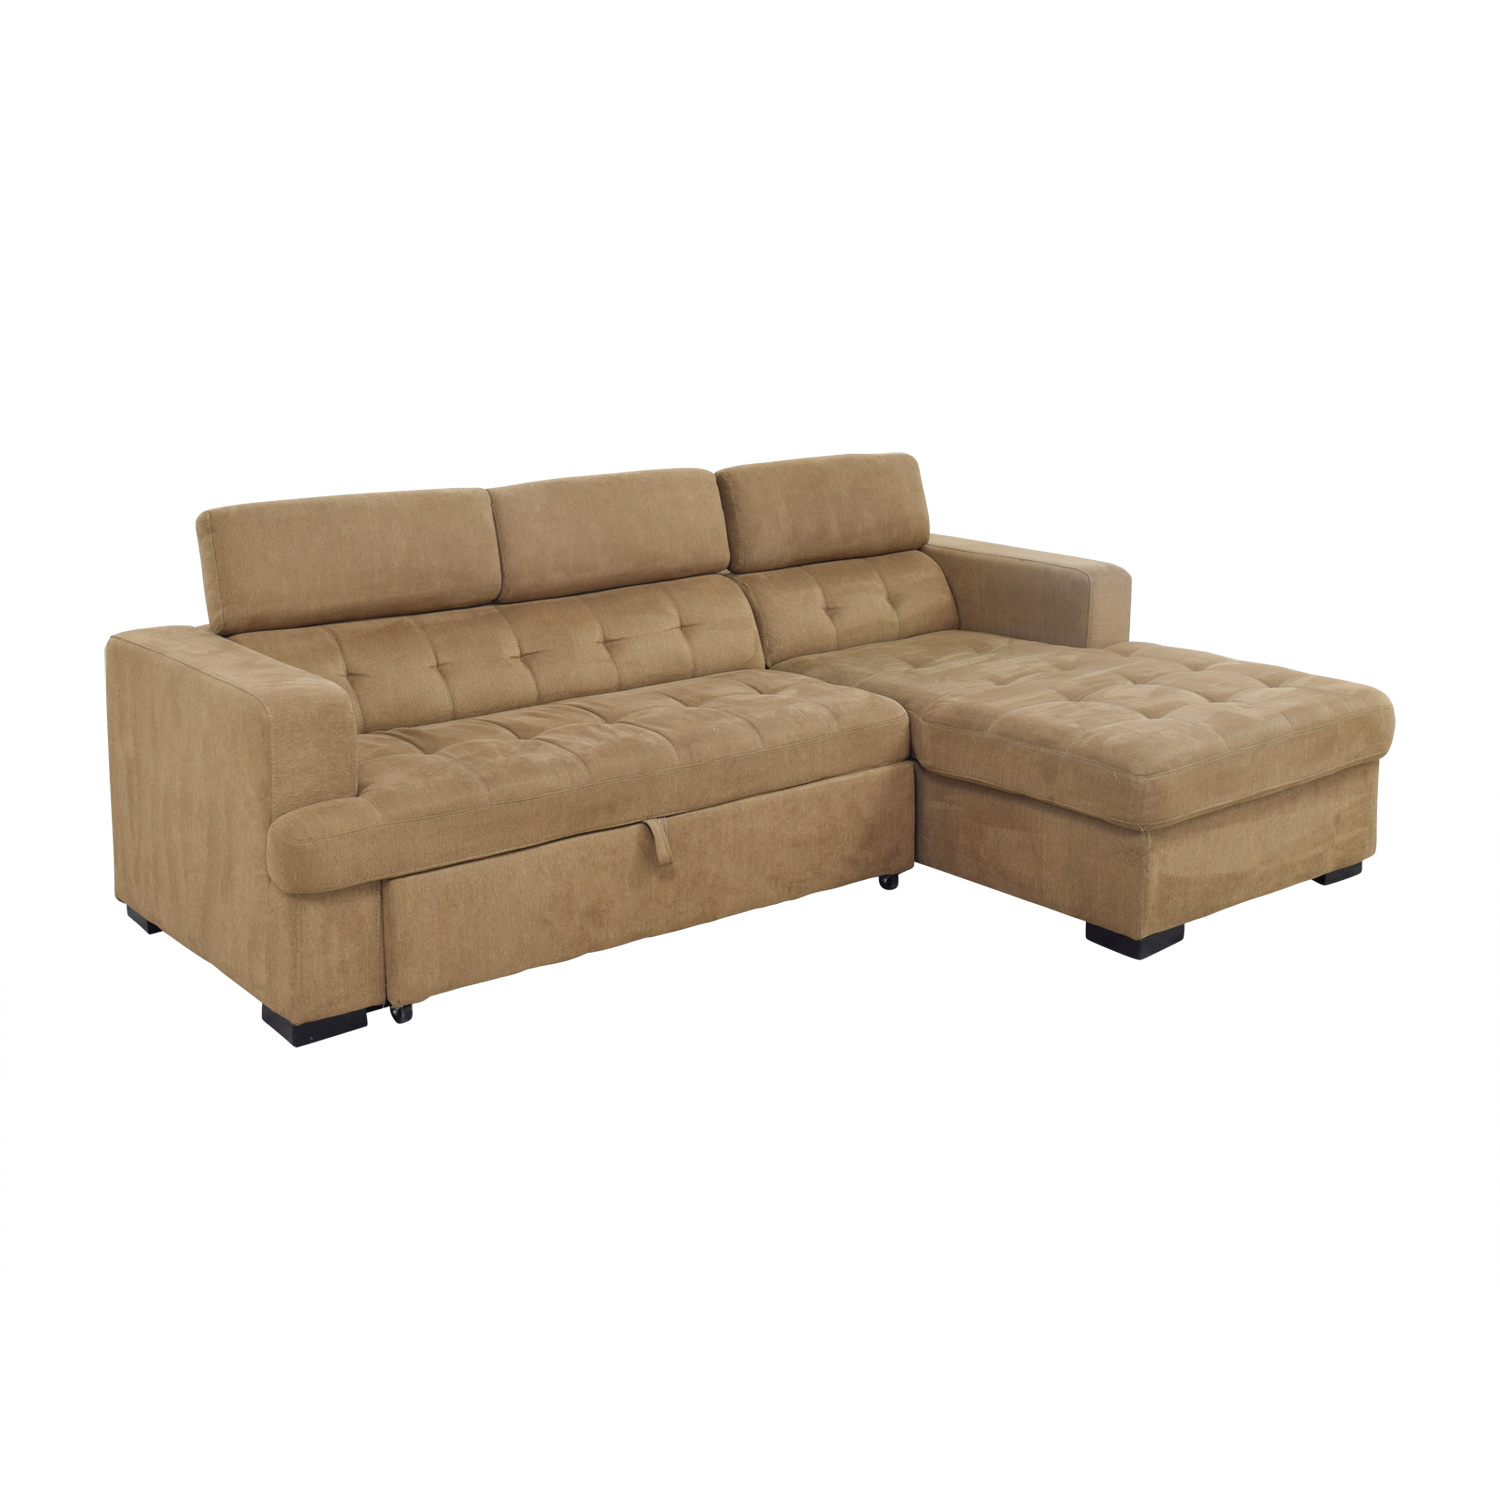 OFF Bob s Furniture Bob s Furniture Brown Pull Out